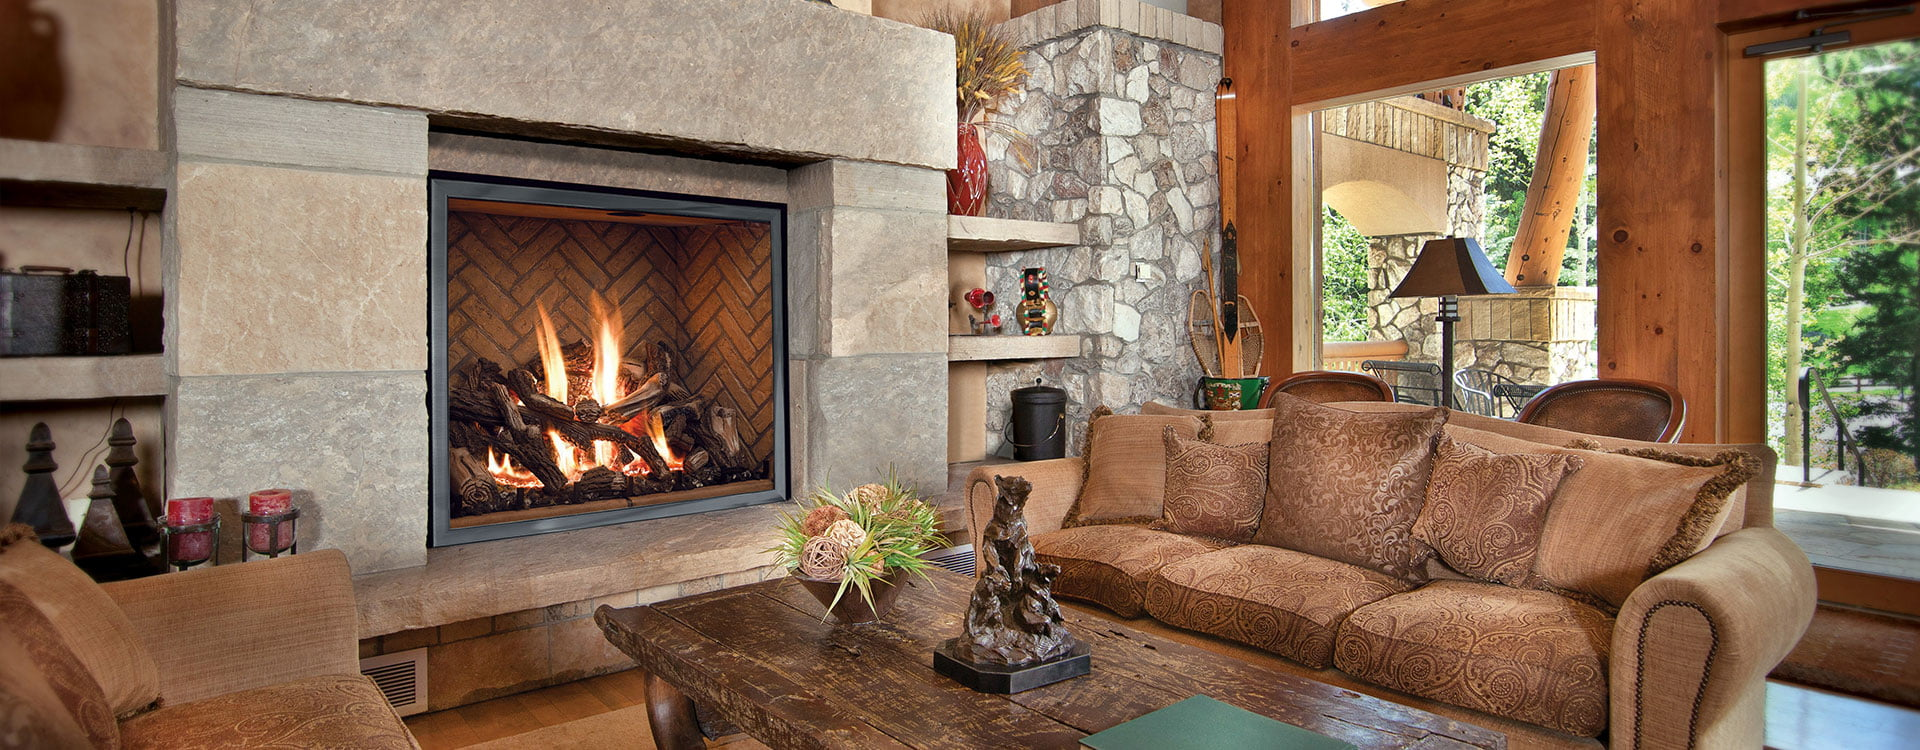 United Brick and Fireplace in Madison, WI